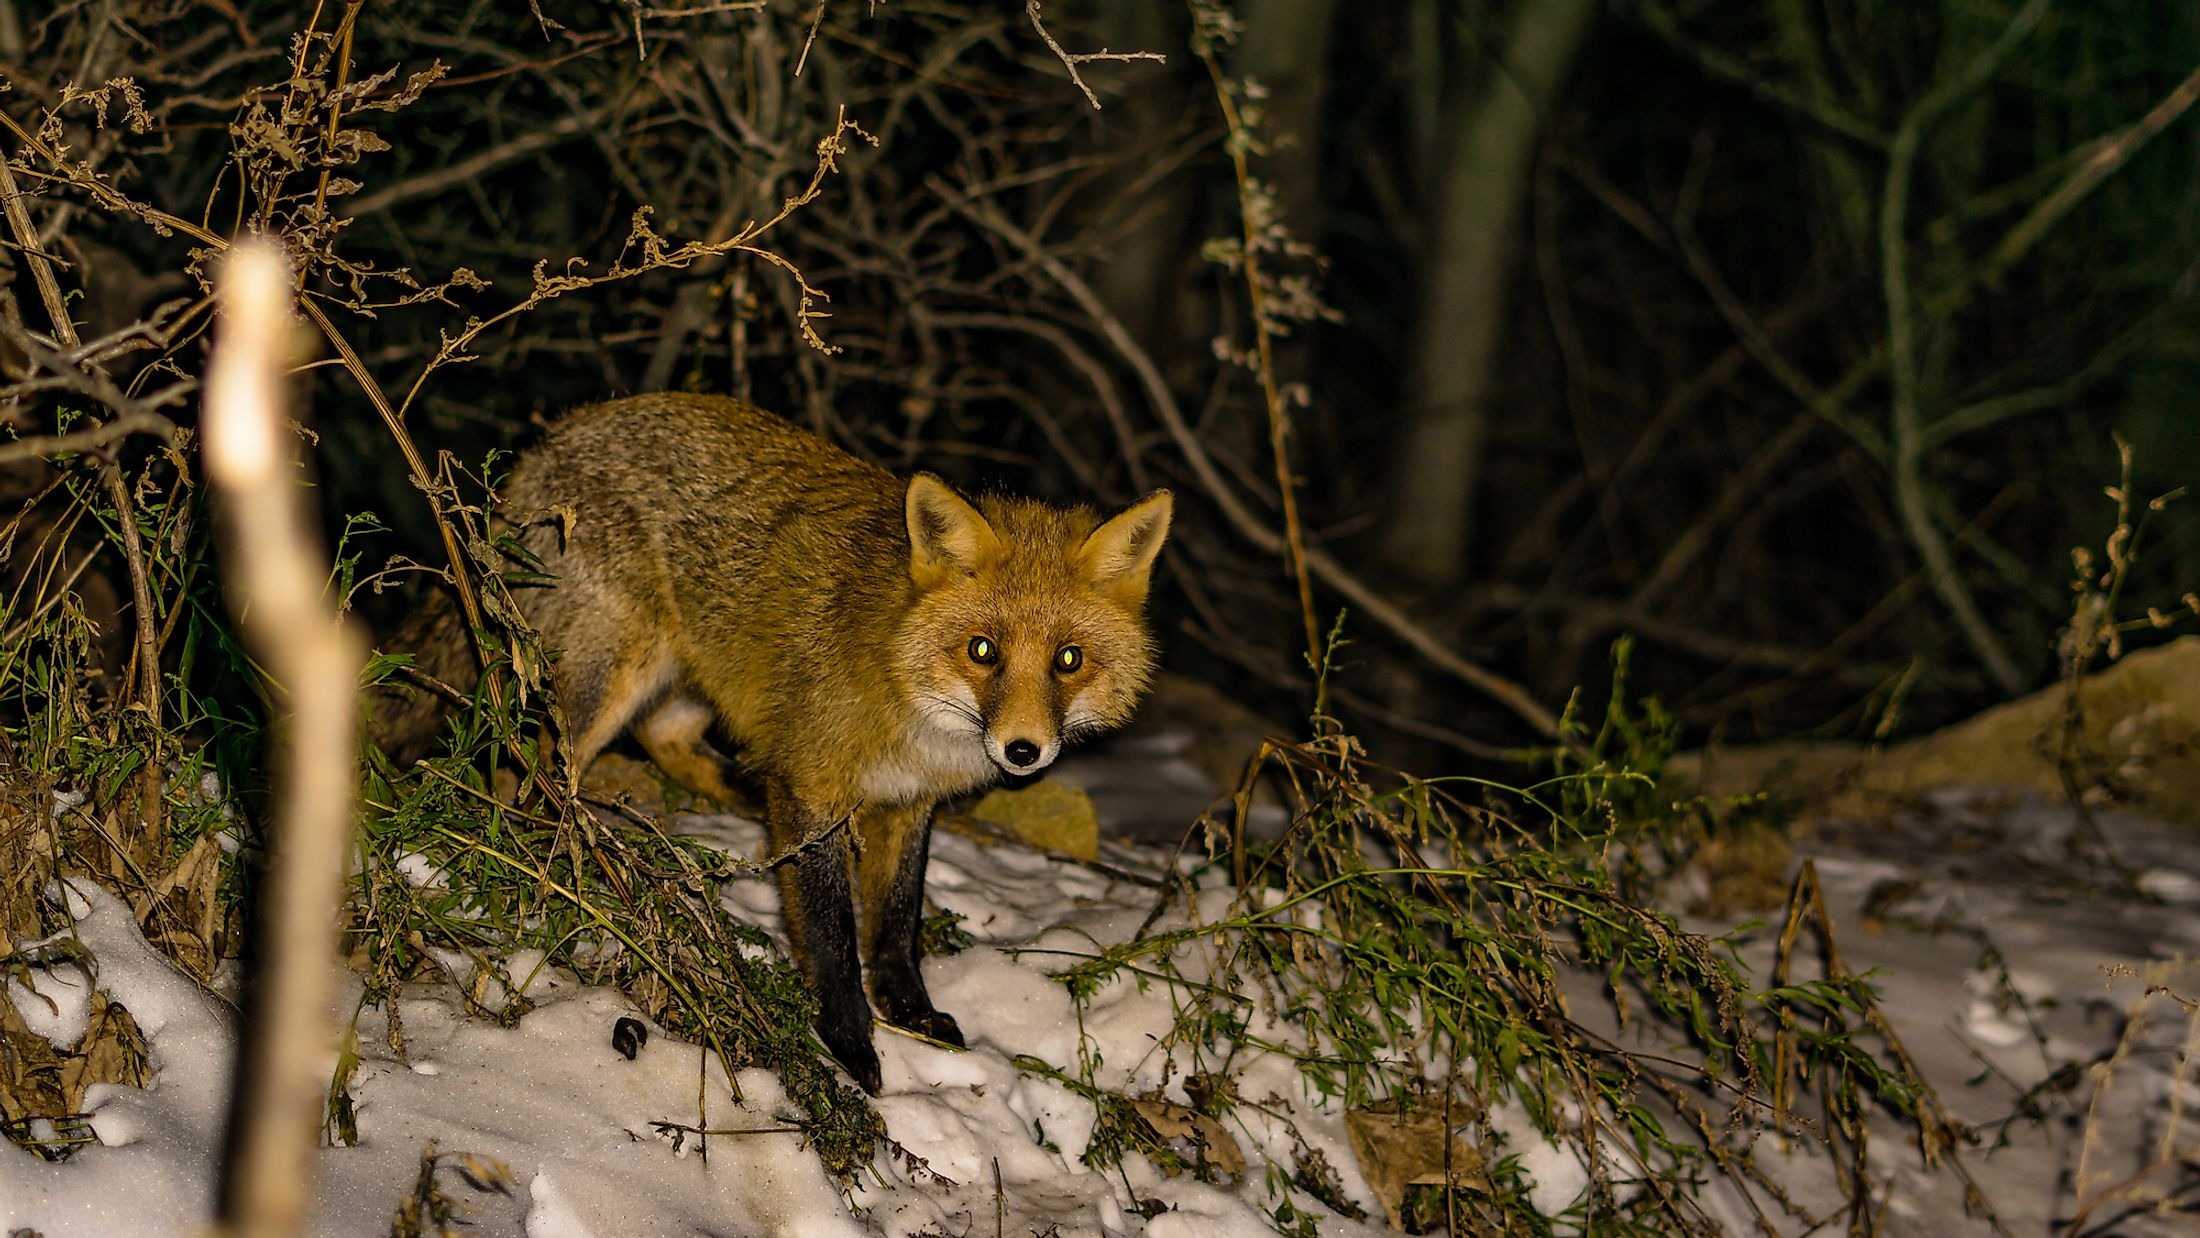 A red fox in a forest at night. Image credit: Boyan Georgiev Georgiev/Shutterstock.com